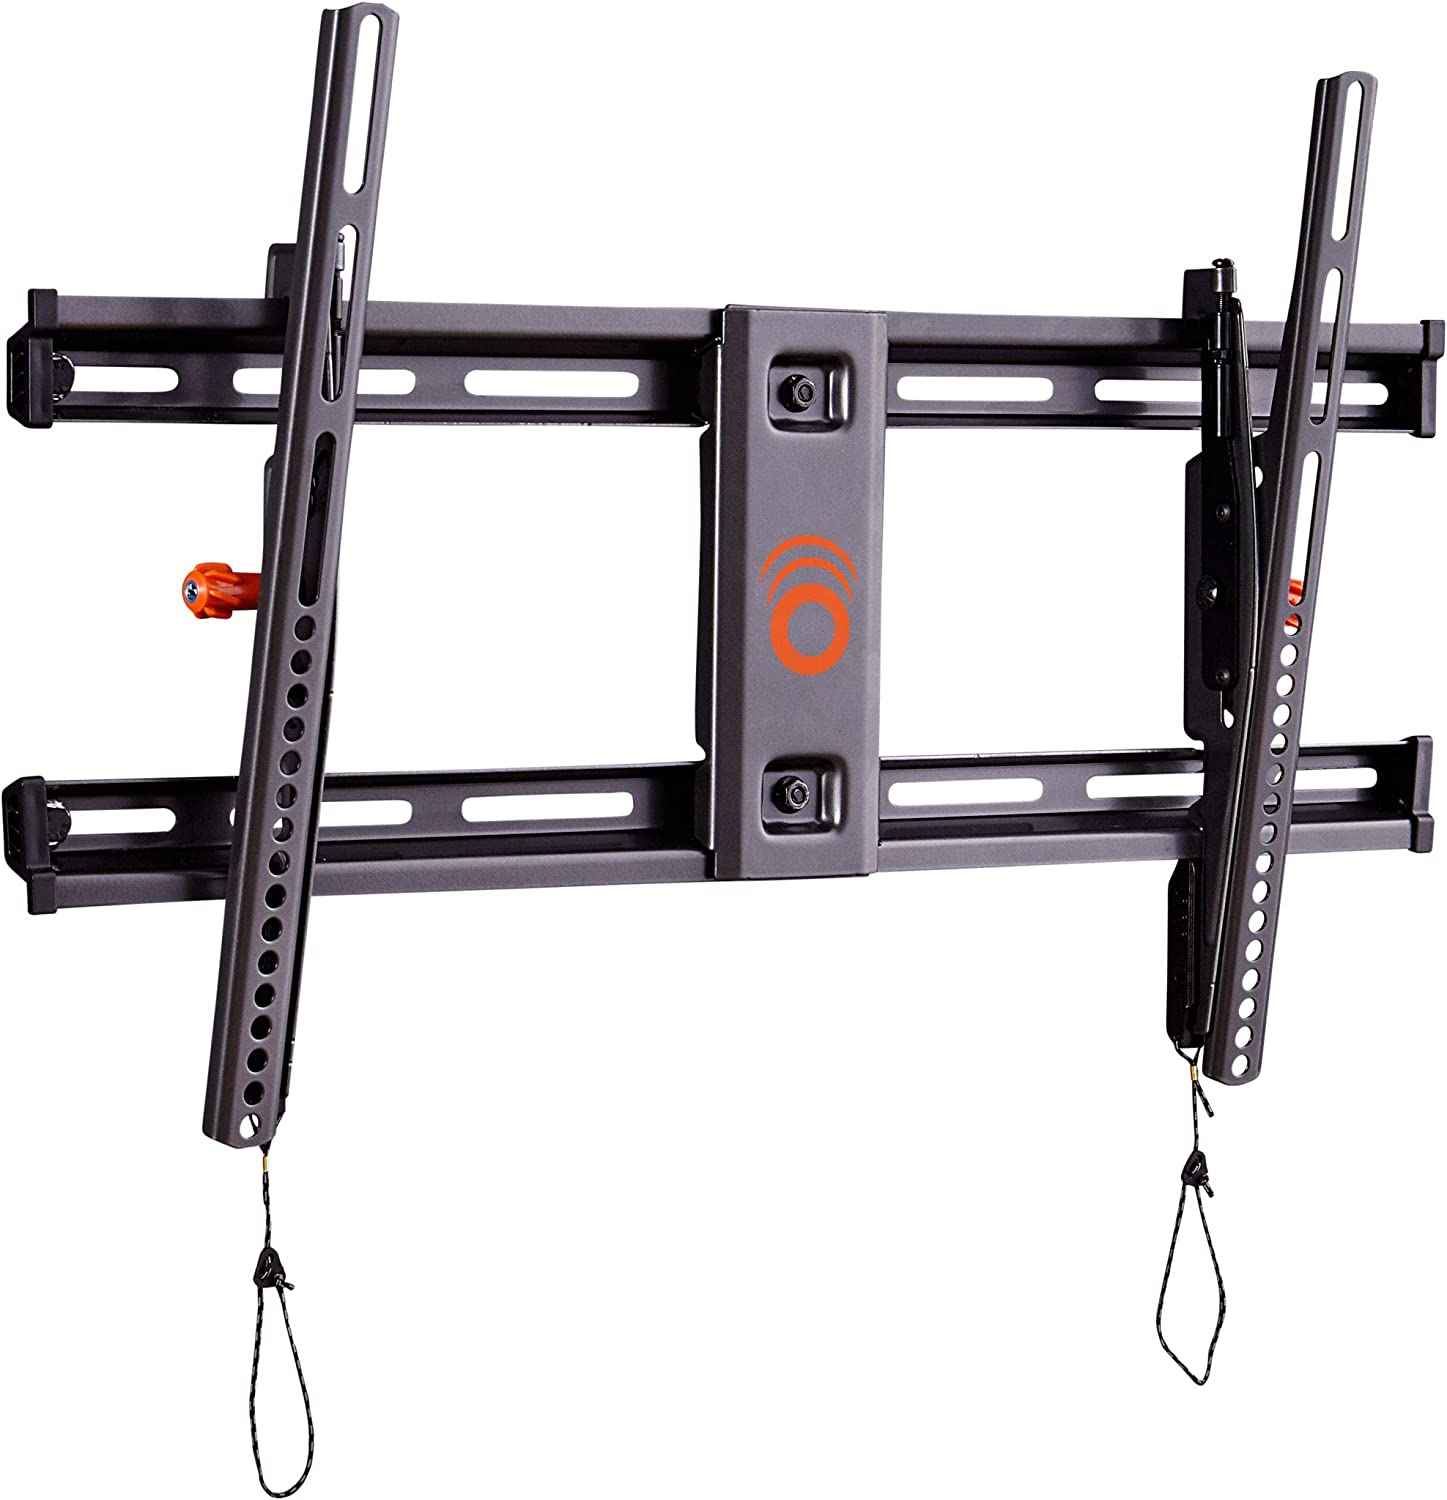 Wall Mount for 65 inch Samsung TV